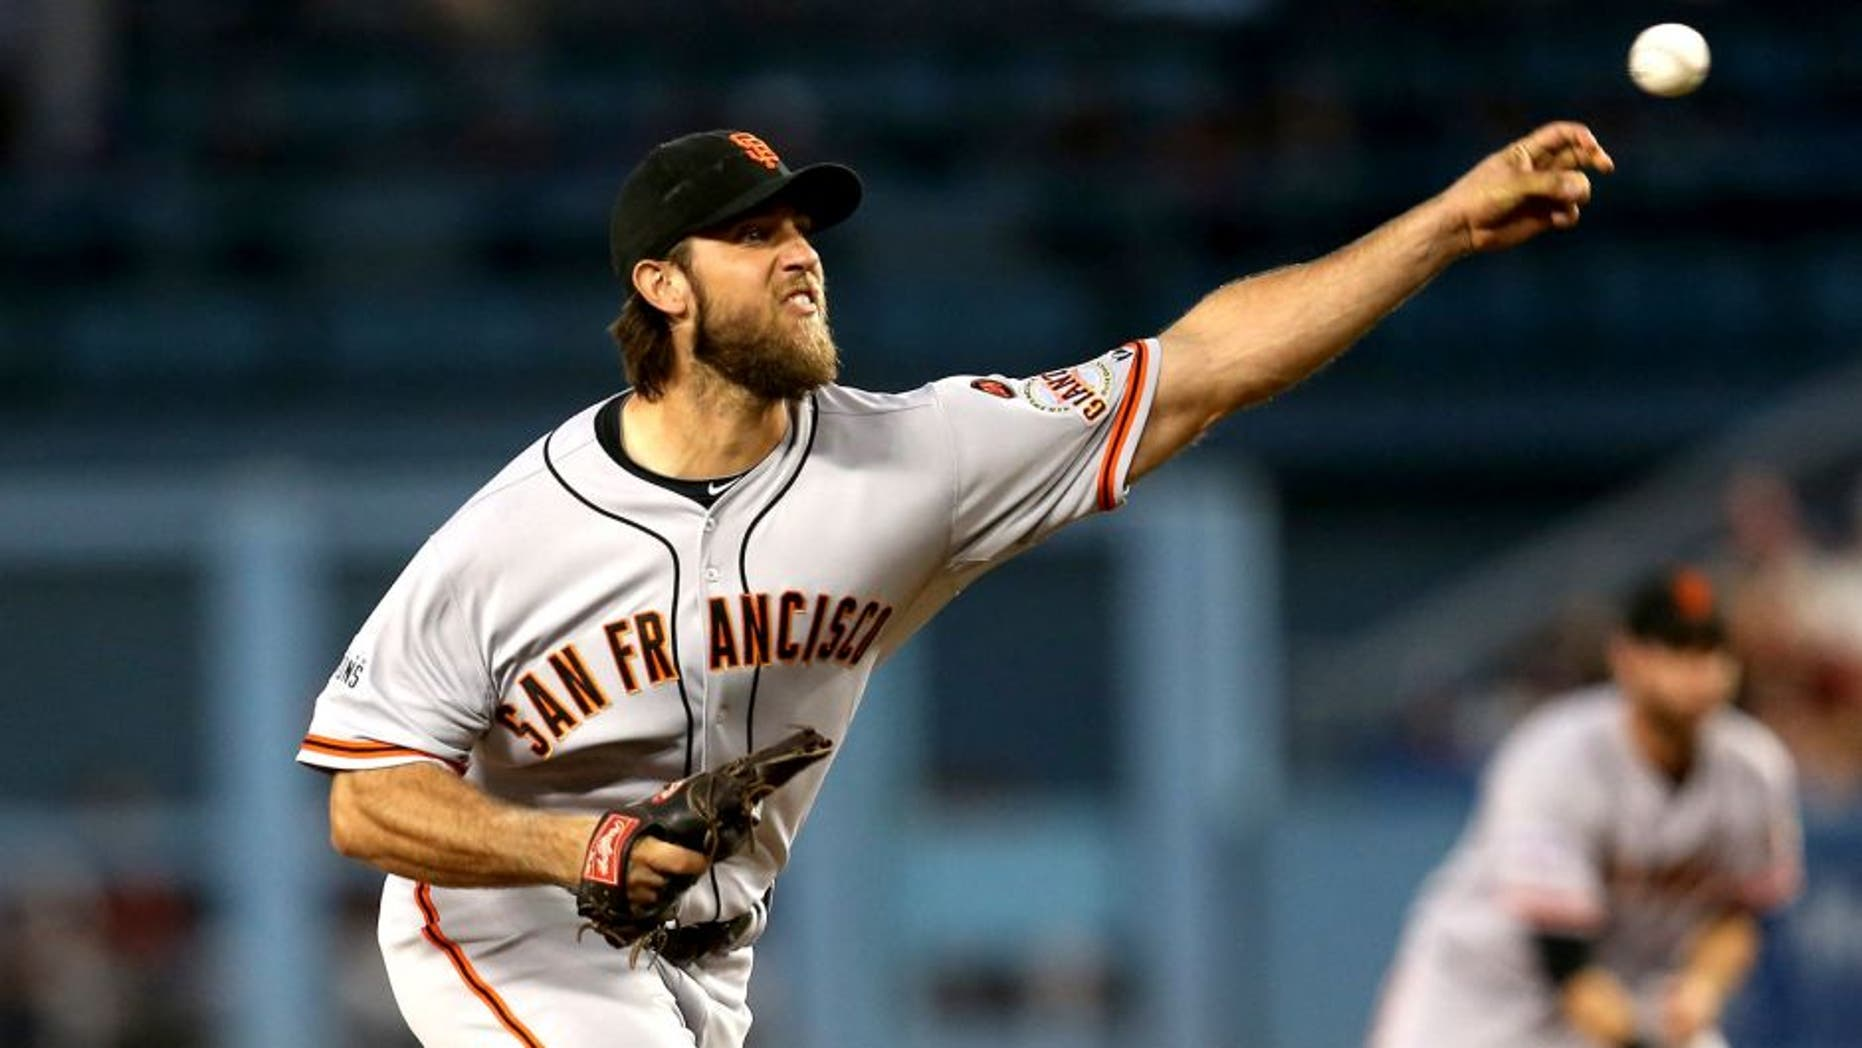 LOS ANGELES, CA - SEPTEMBER 01: Madison Bumgarner #40 of the San Francisco Giants throws a pitch against the Los Angeles Dodgers at Dodger Stadium on September 1, 2015 in Los Angeles, California (Photo by Stephen Dunn/Getty Images)